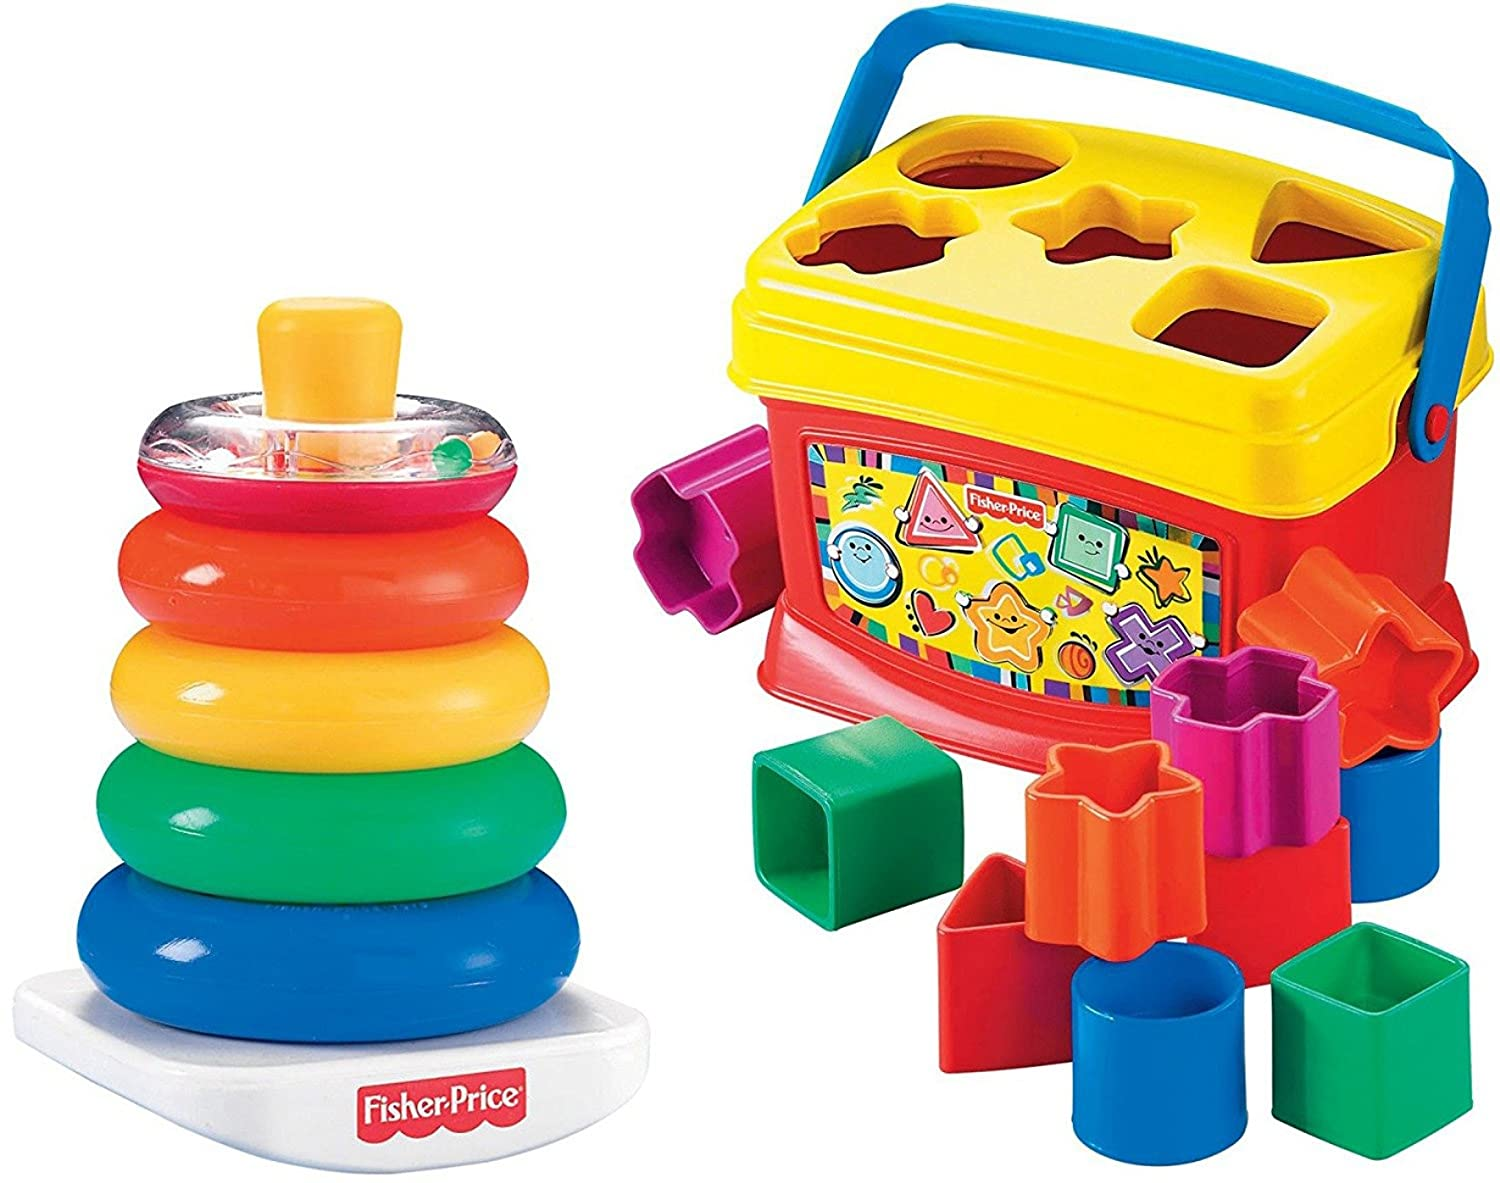 Top 15 Best Educational Toys for 1 Year Old (2020 Reviews) 11